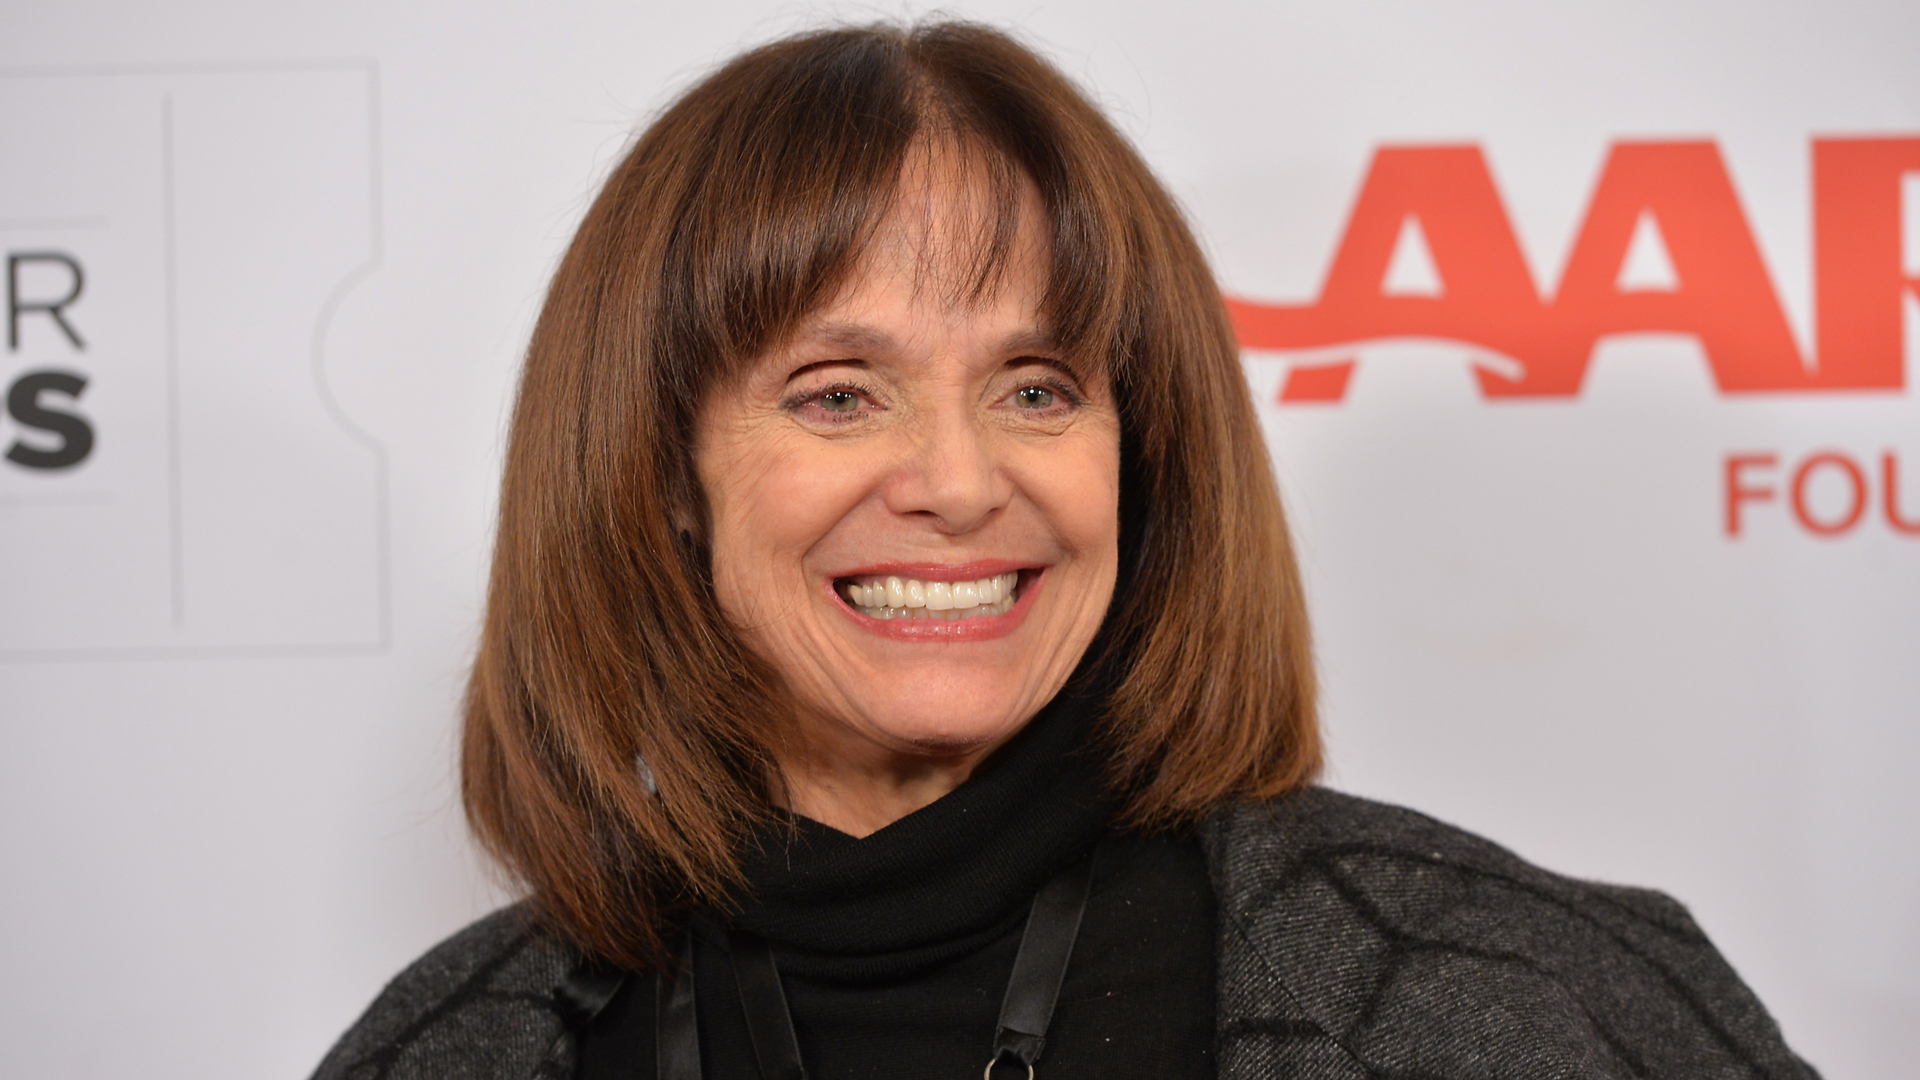 Actress Valerie Harper arrives to AARP The Magazine's 14th Annual Movies For Grownups Awards Gala at the Beverly Wilshire Four Seasons Hotel on February 2, 2015 in Beverly Hills. (Credit: Alberto E. Rodriguez/Getty Images)